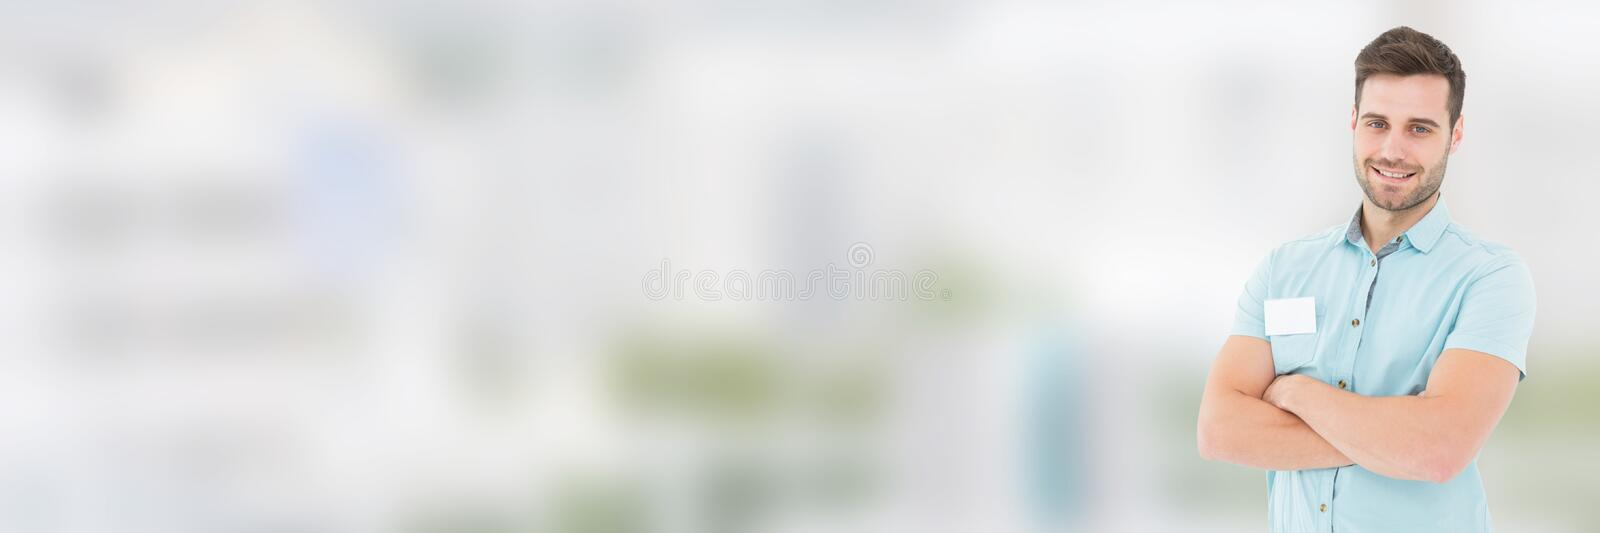 Working man in front of blurred background royalty free stock photo